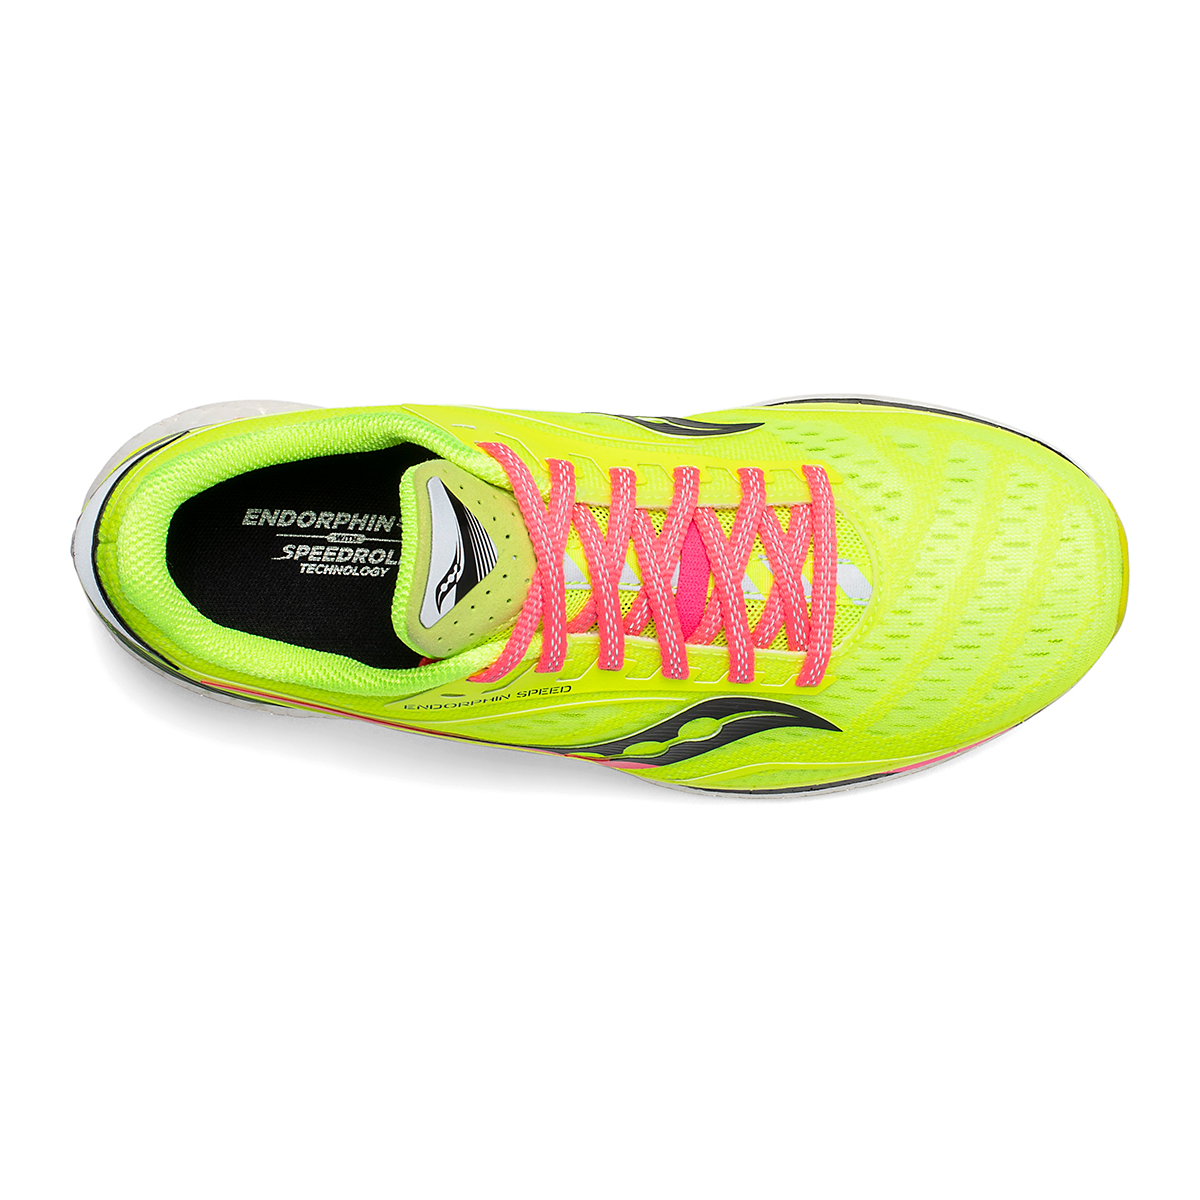 Women's Saucony VIZIPRO Speed Endorphin Speed Running Shoe - Color: Citron - Size: 5 - Width: Regular, Citron, large, image 3